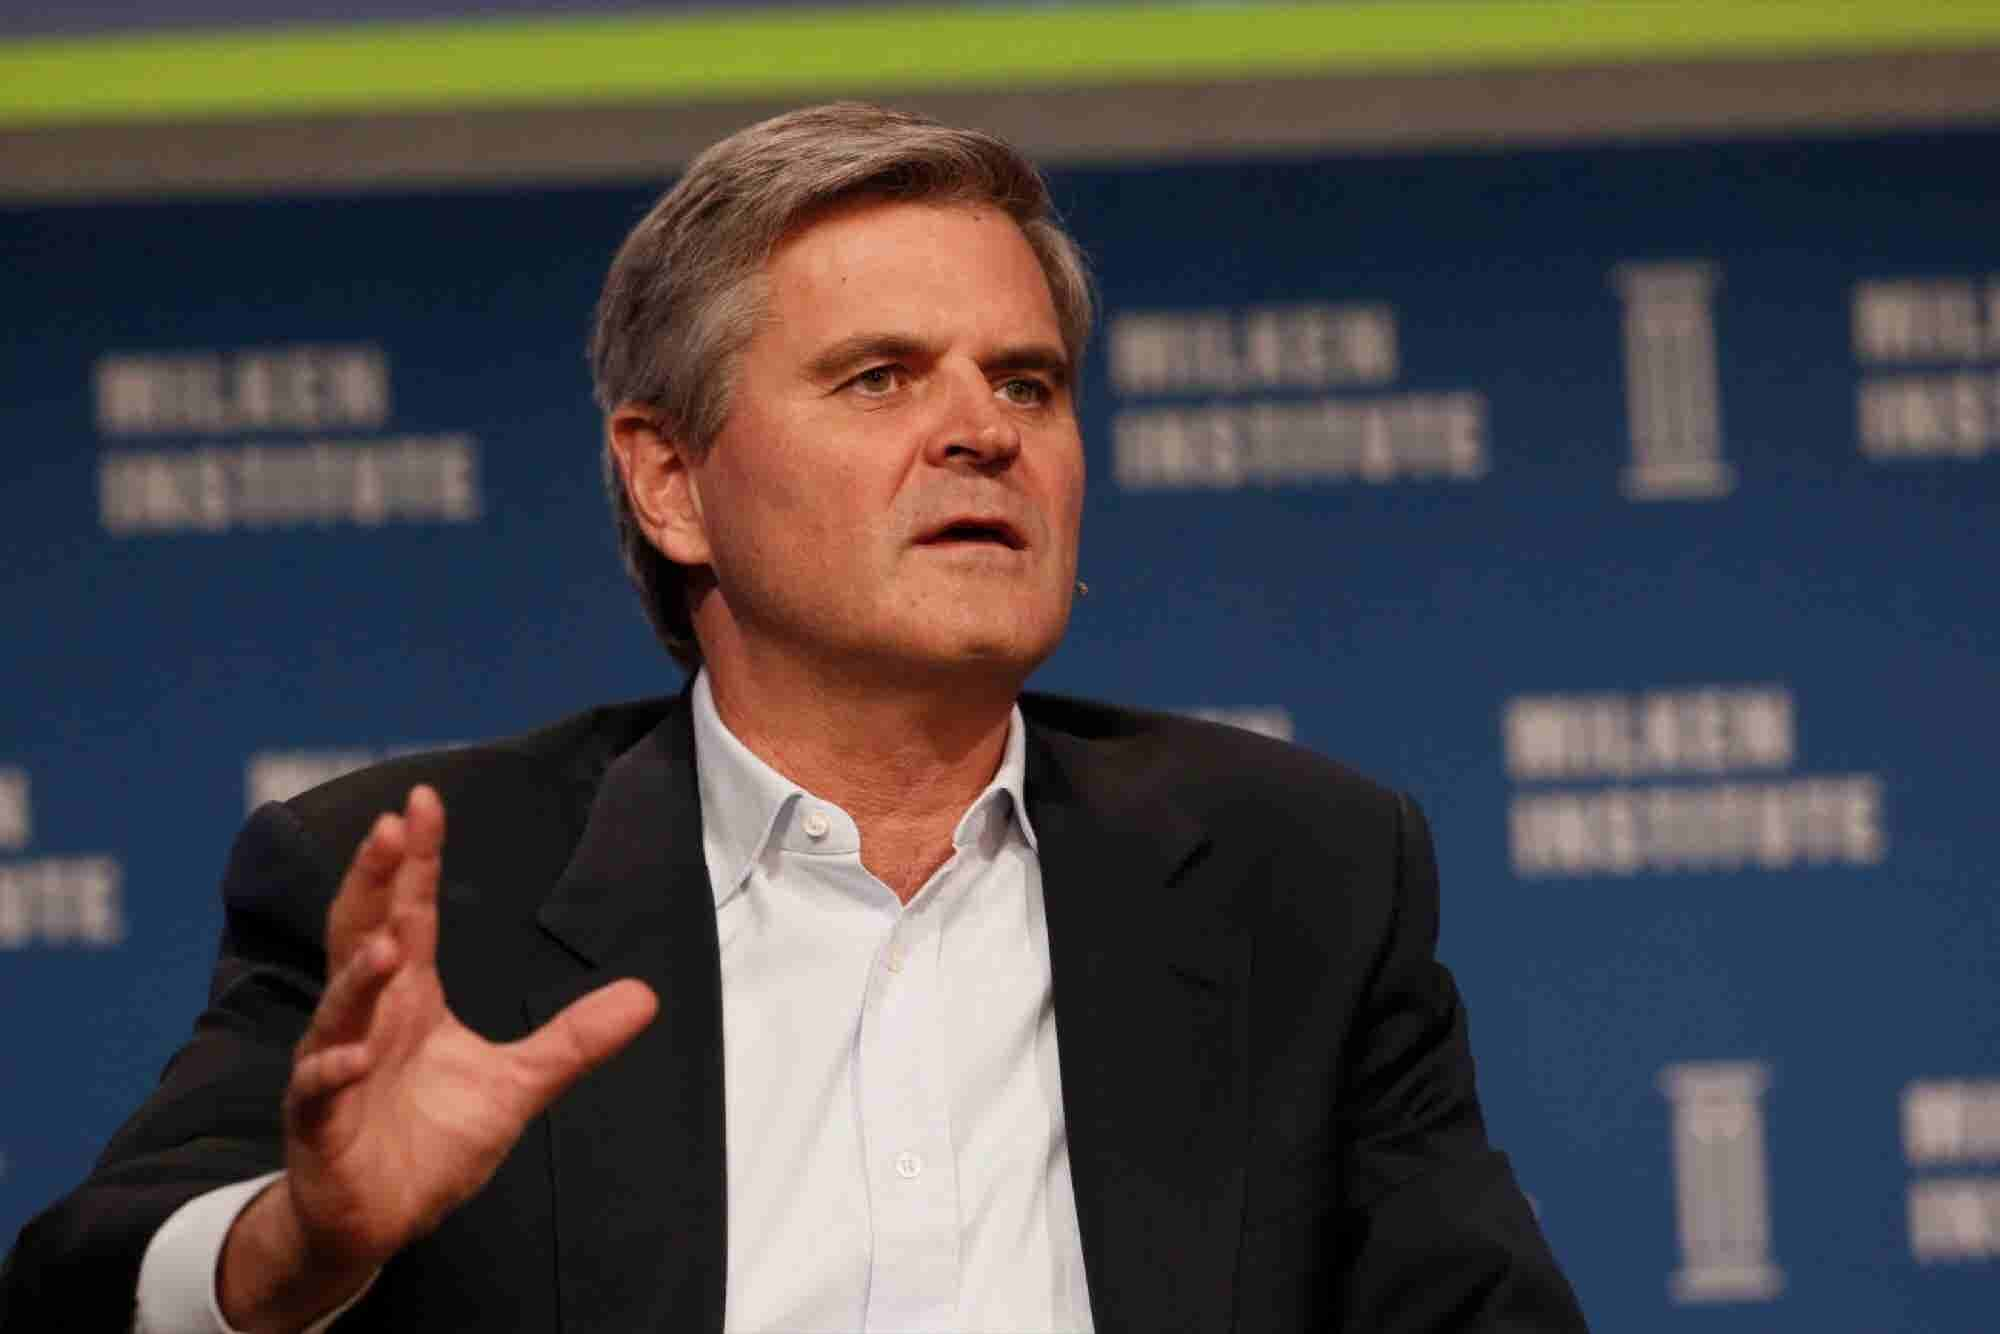 How Steve Case Is Preparing for the Web's Third Wave